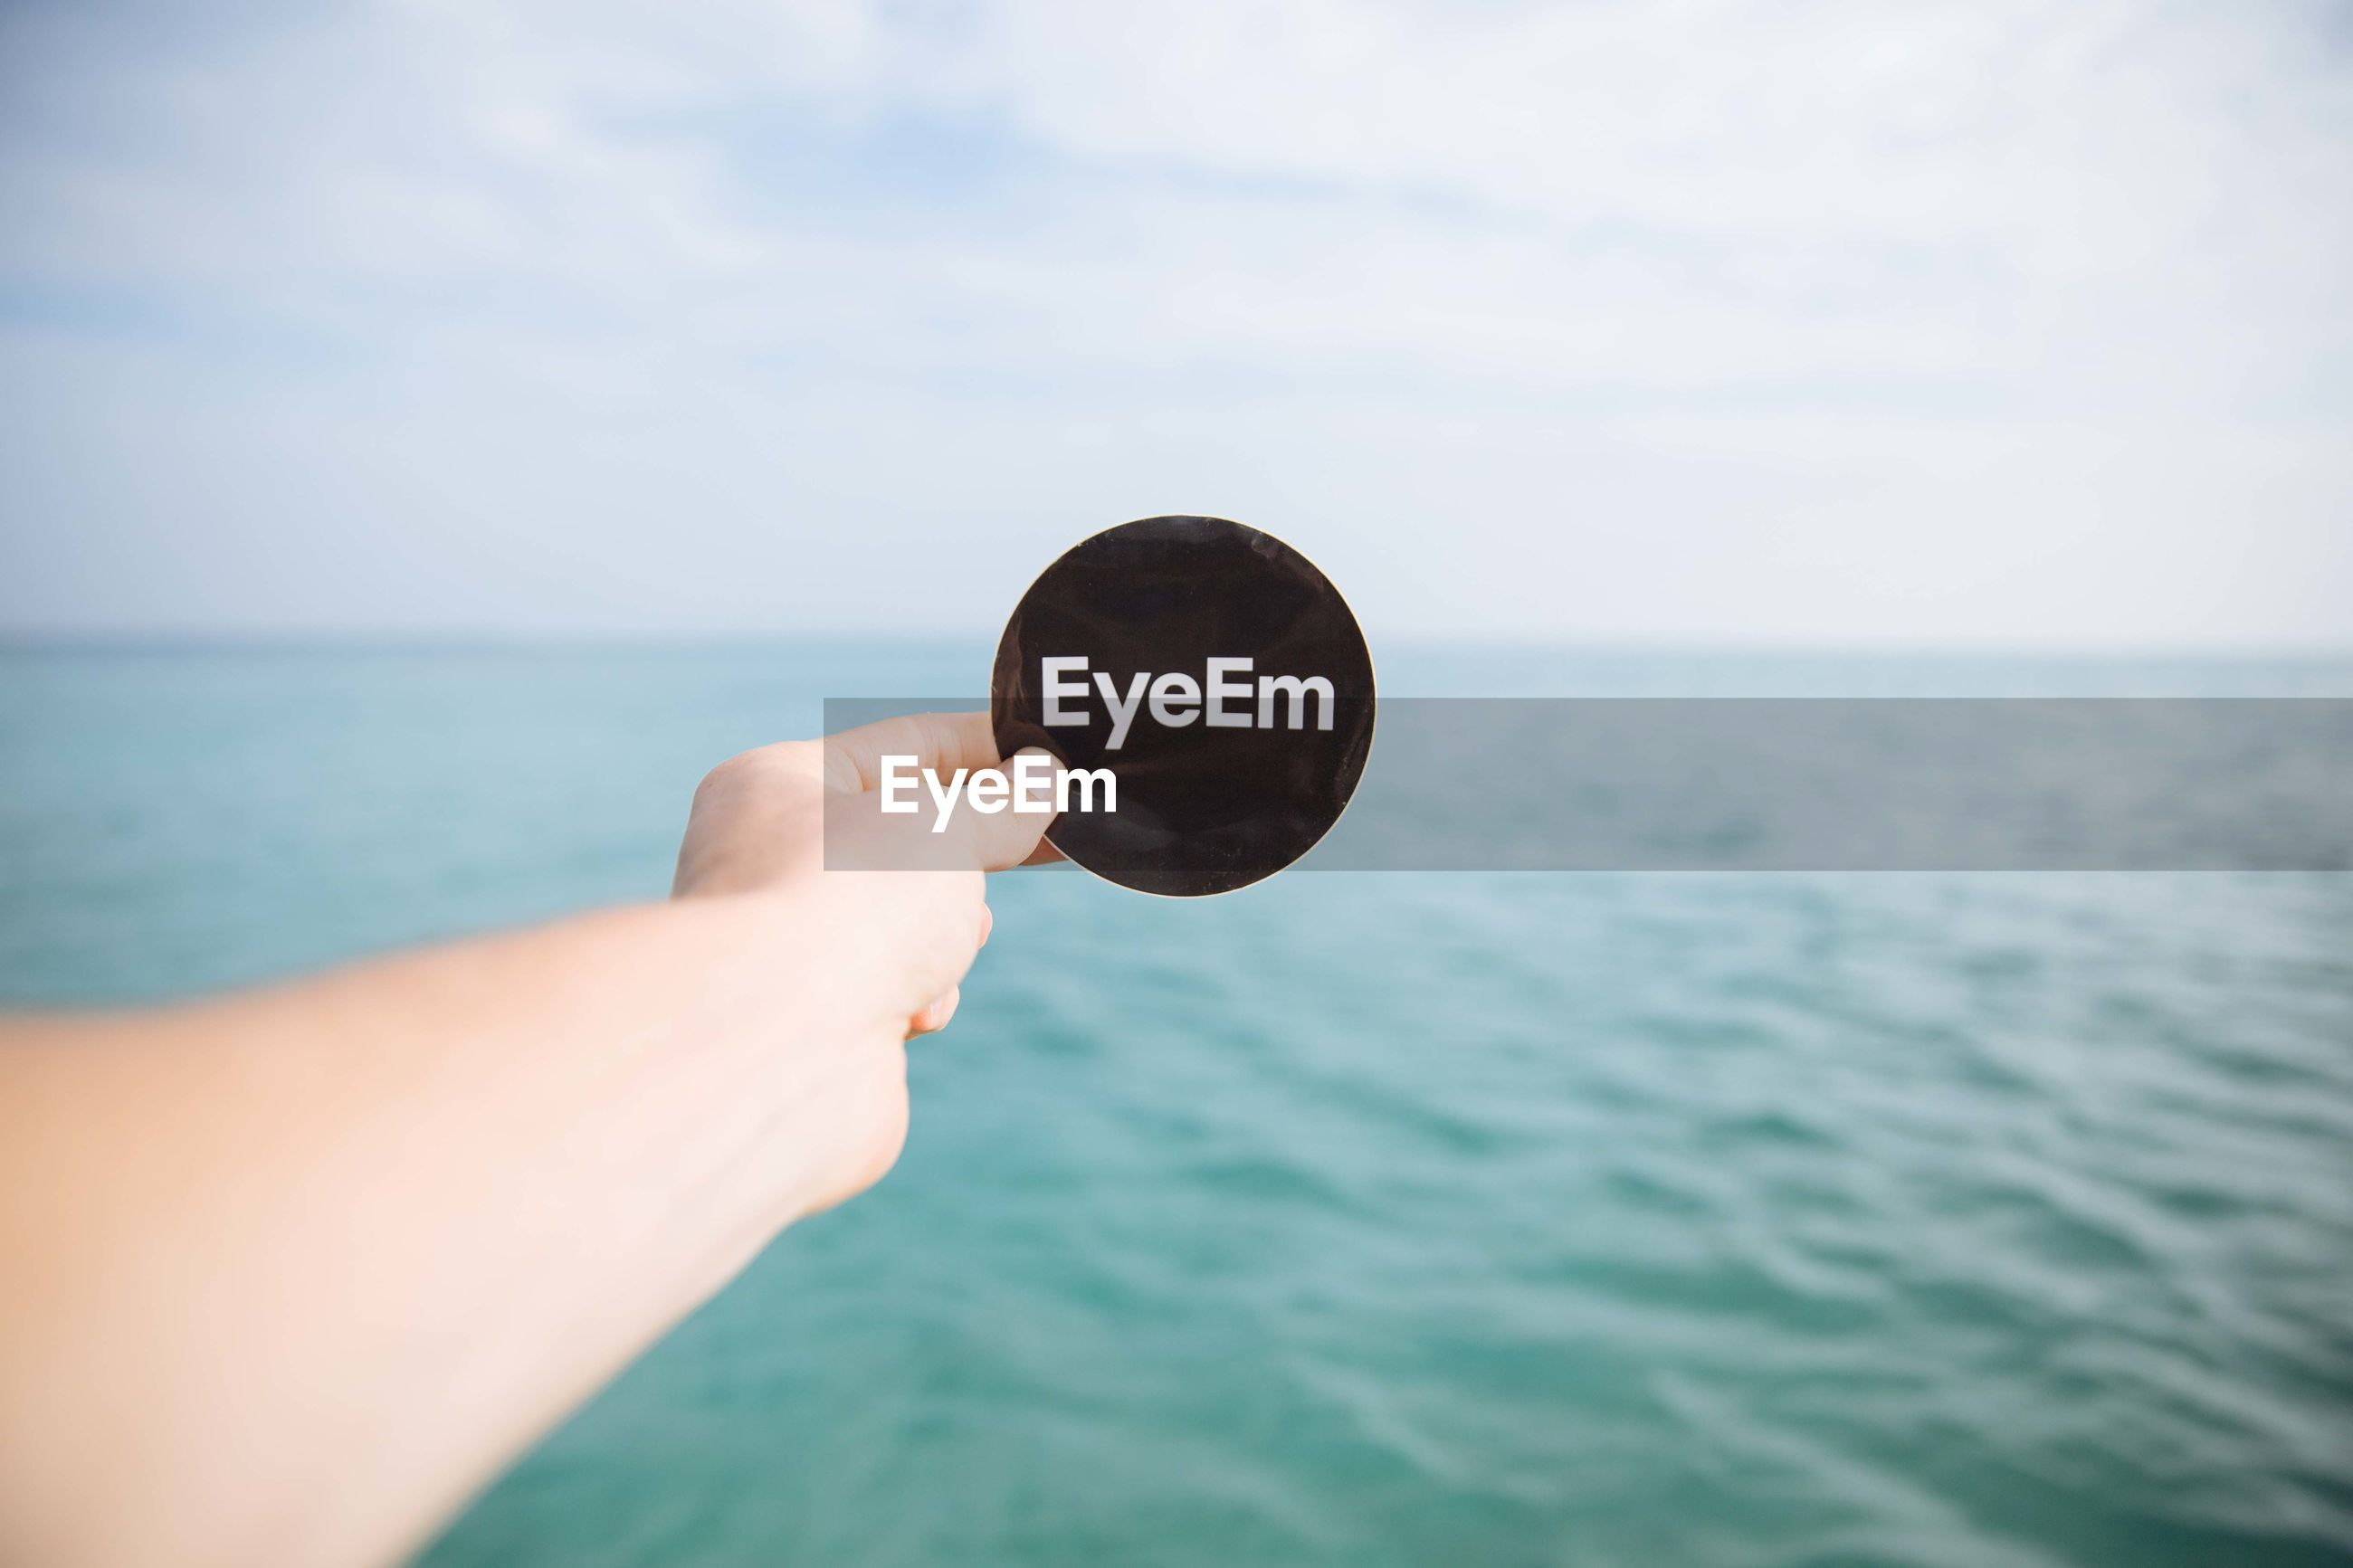 Cropped image of hand holding eyeem label against sea